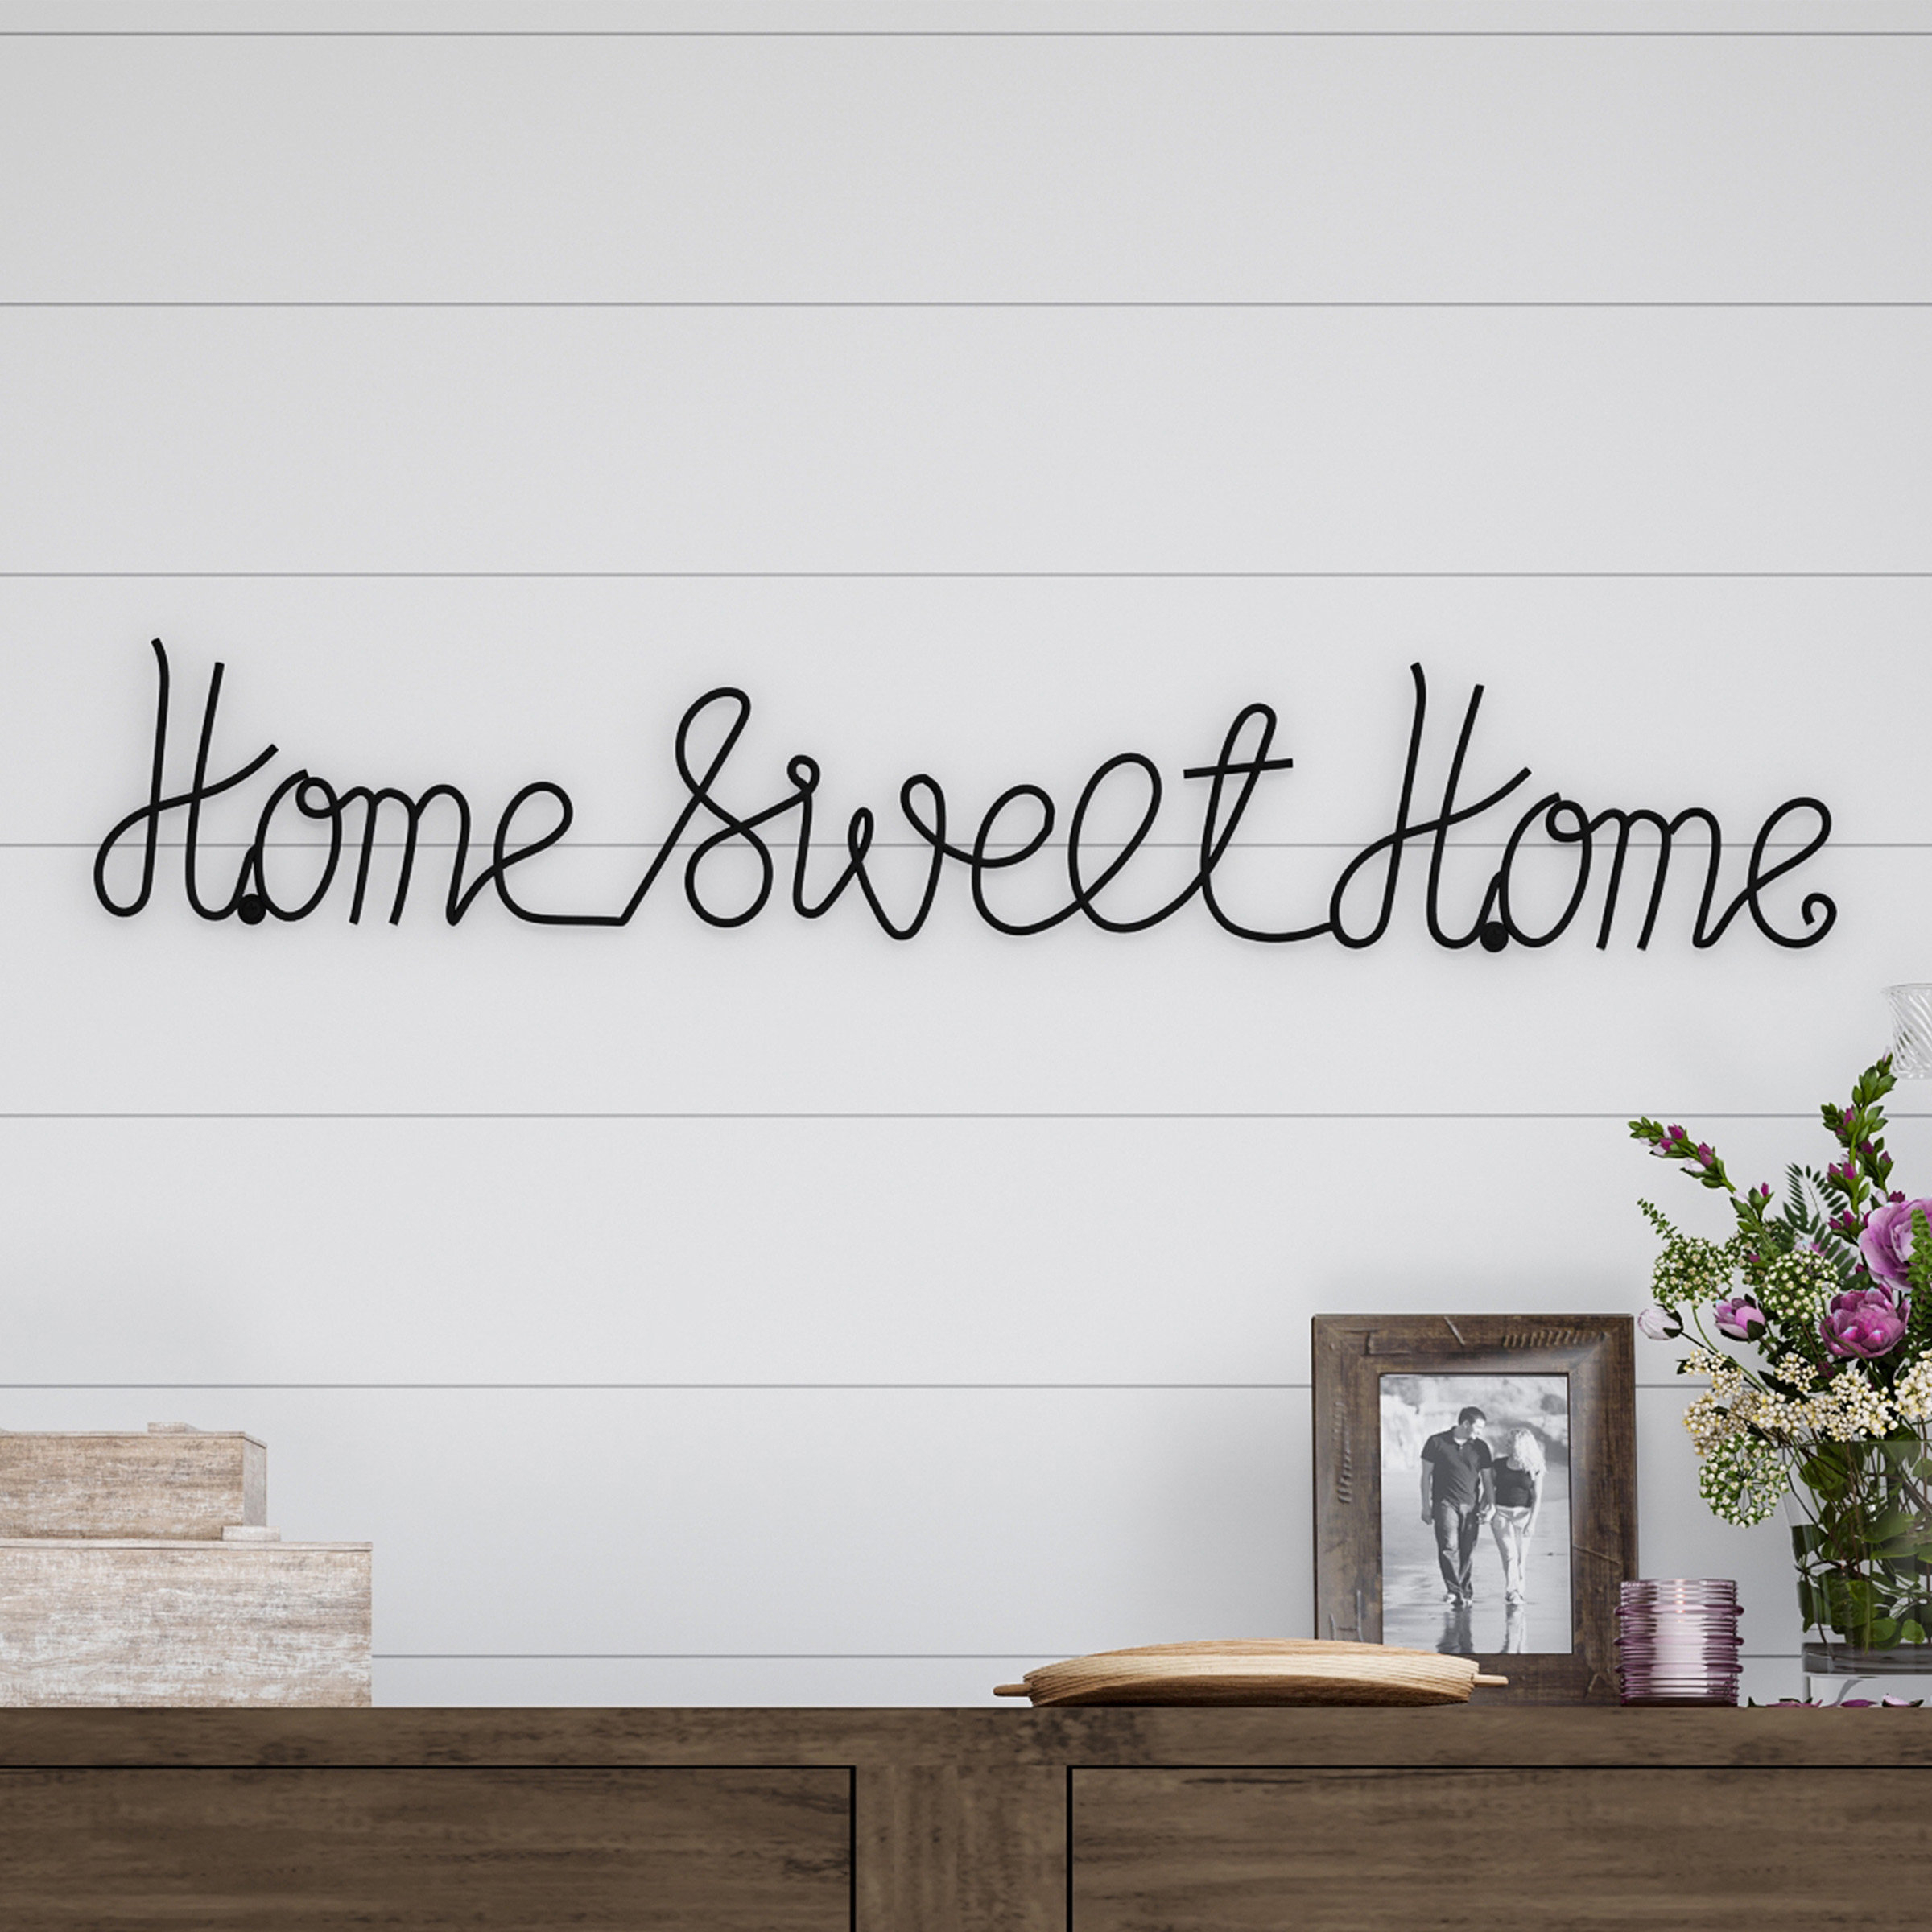 Home Sweet Home Metal Wall Décor Pertaining To Laser Engraved Home Sweet Home Wall Decor (View 6 of 30)